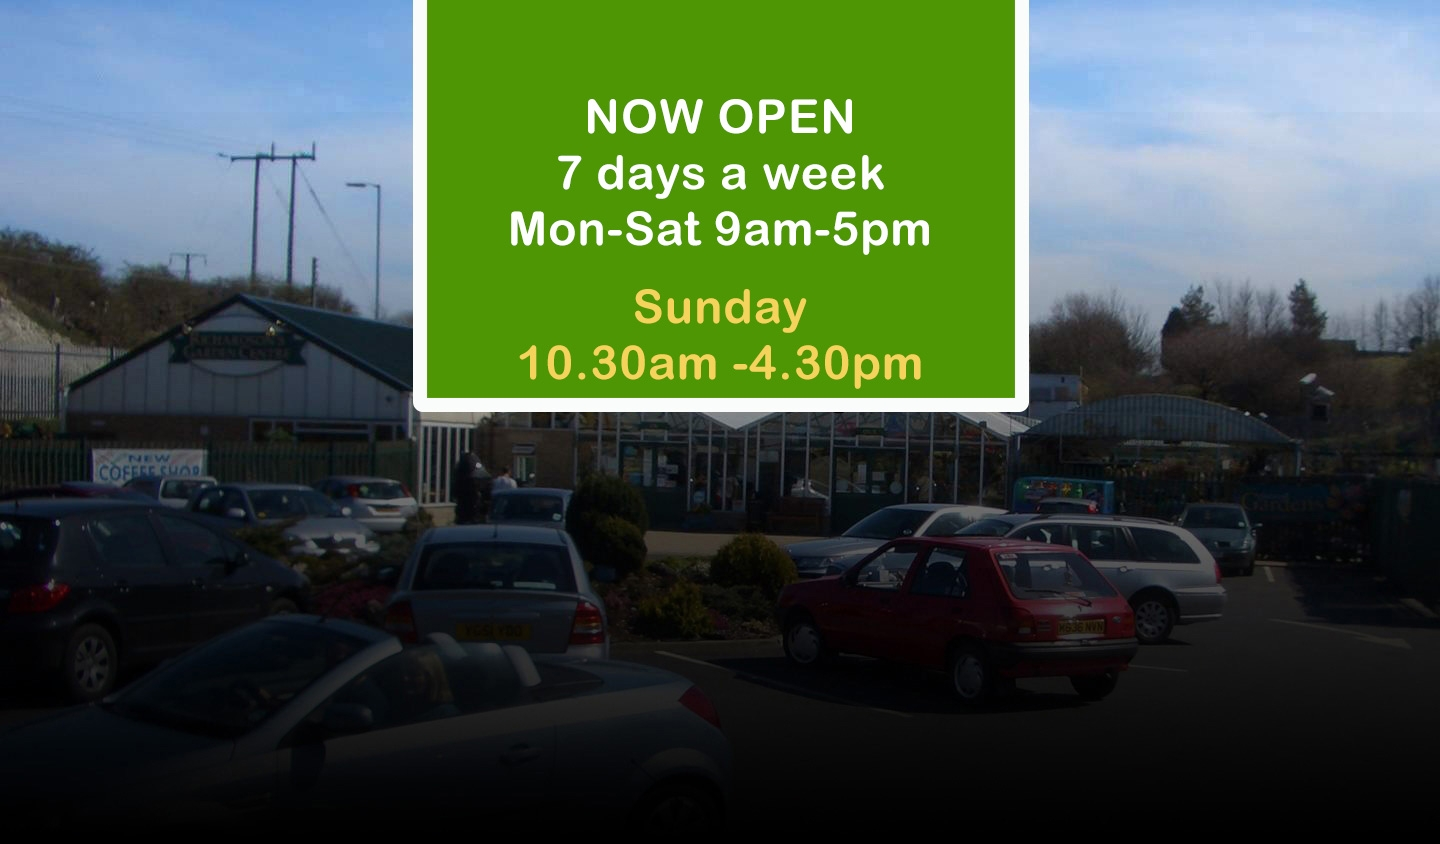 We are open again, Monday-Saturday 9am -5pm and Sunday 10.30am-4.30pm